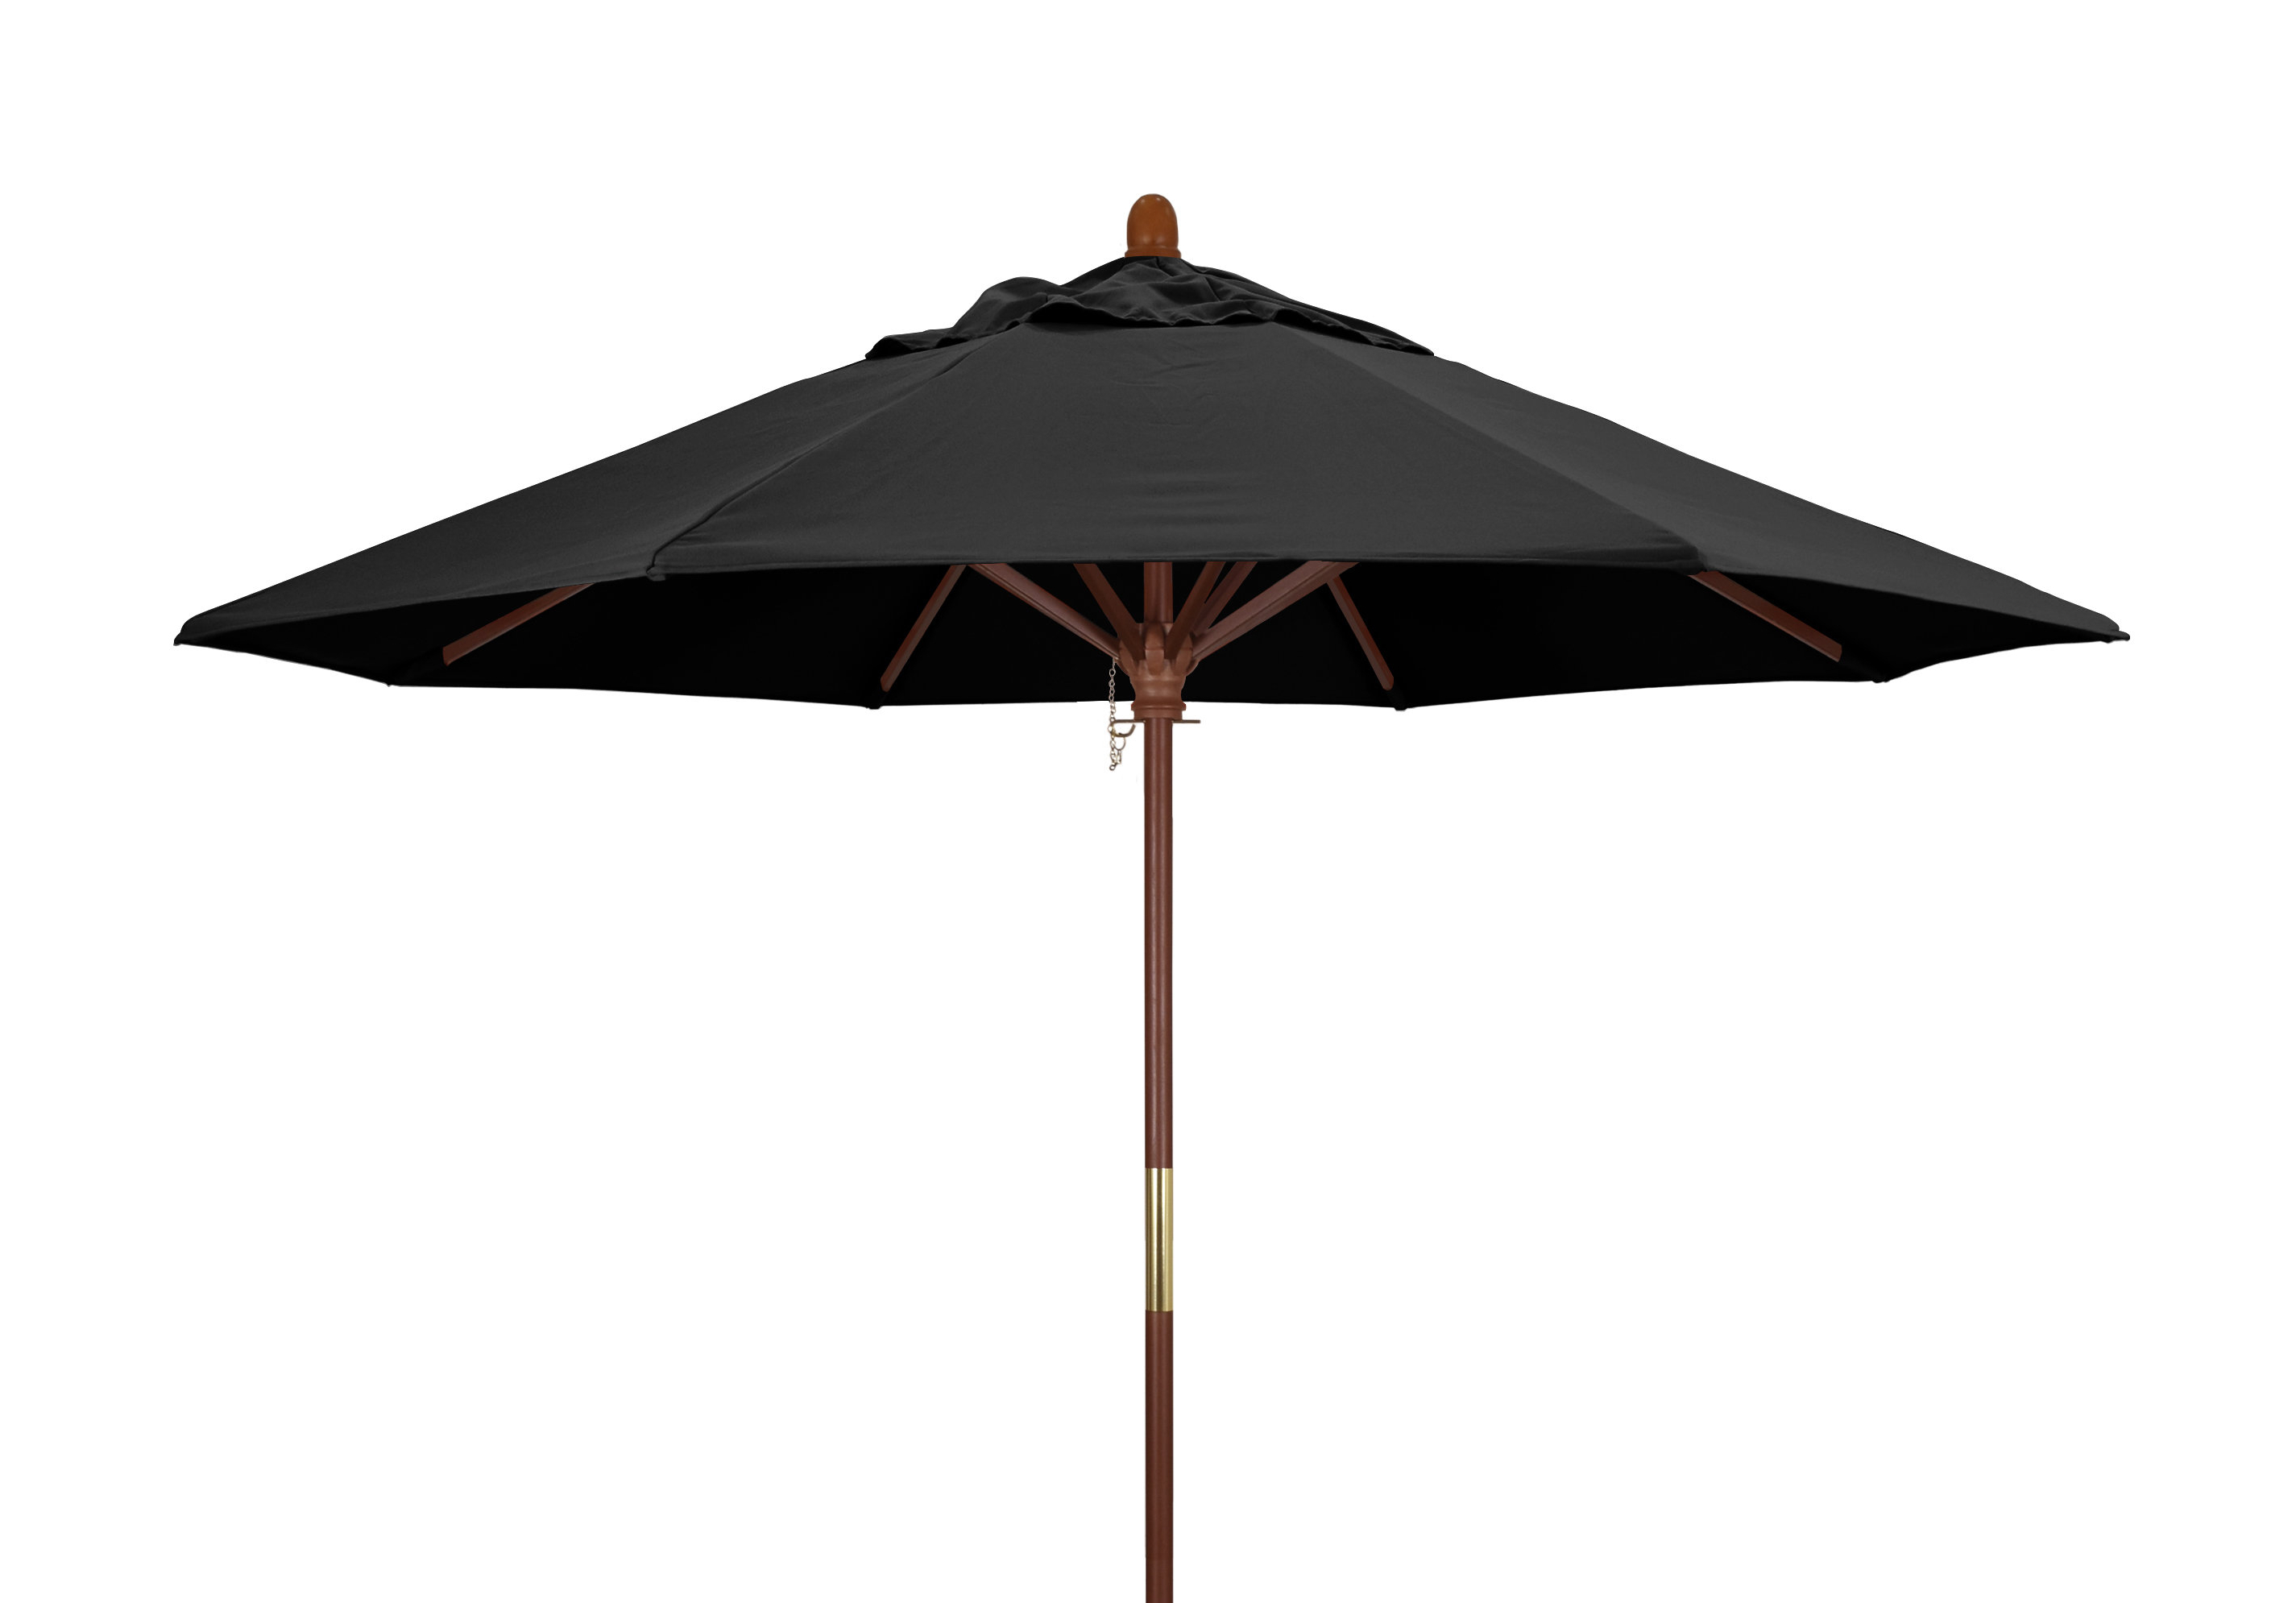 Lorinda Market Umbrellas Intended For Recent Mraz 9' Market Umbrella (View 11 of 20)